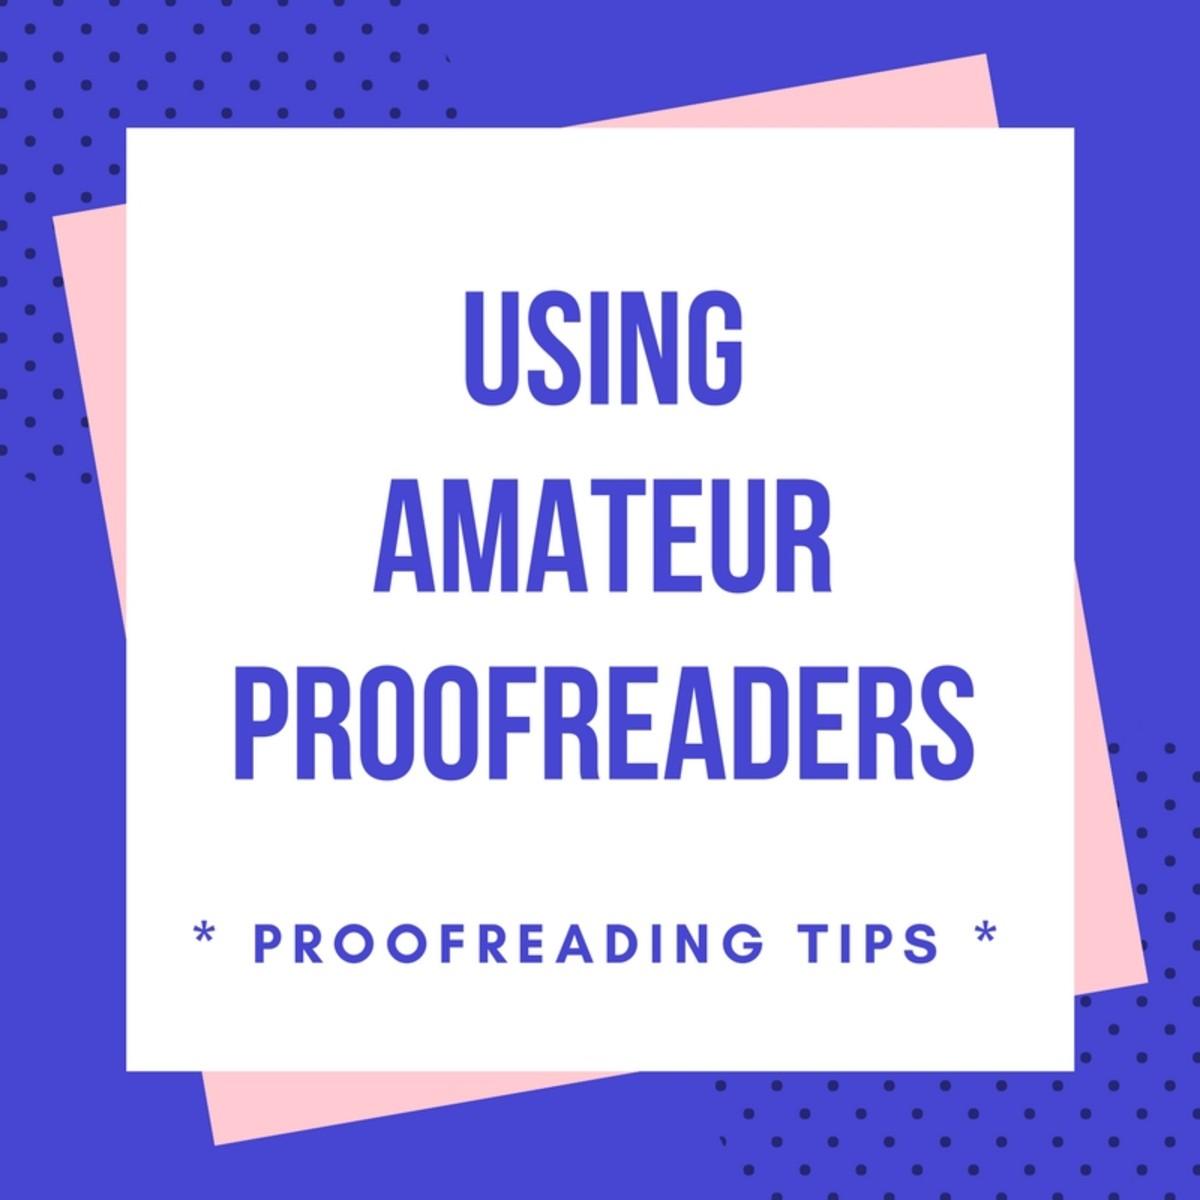 Proofreading Tips: Using Amateur Proofreaders